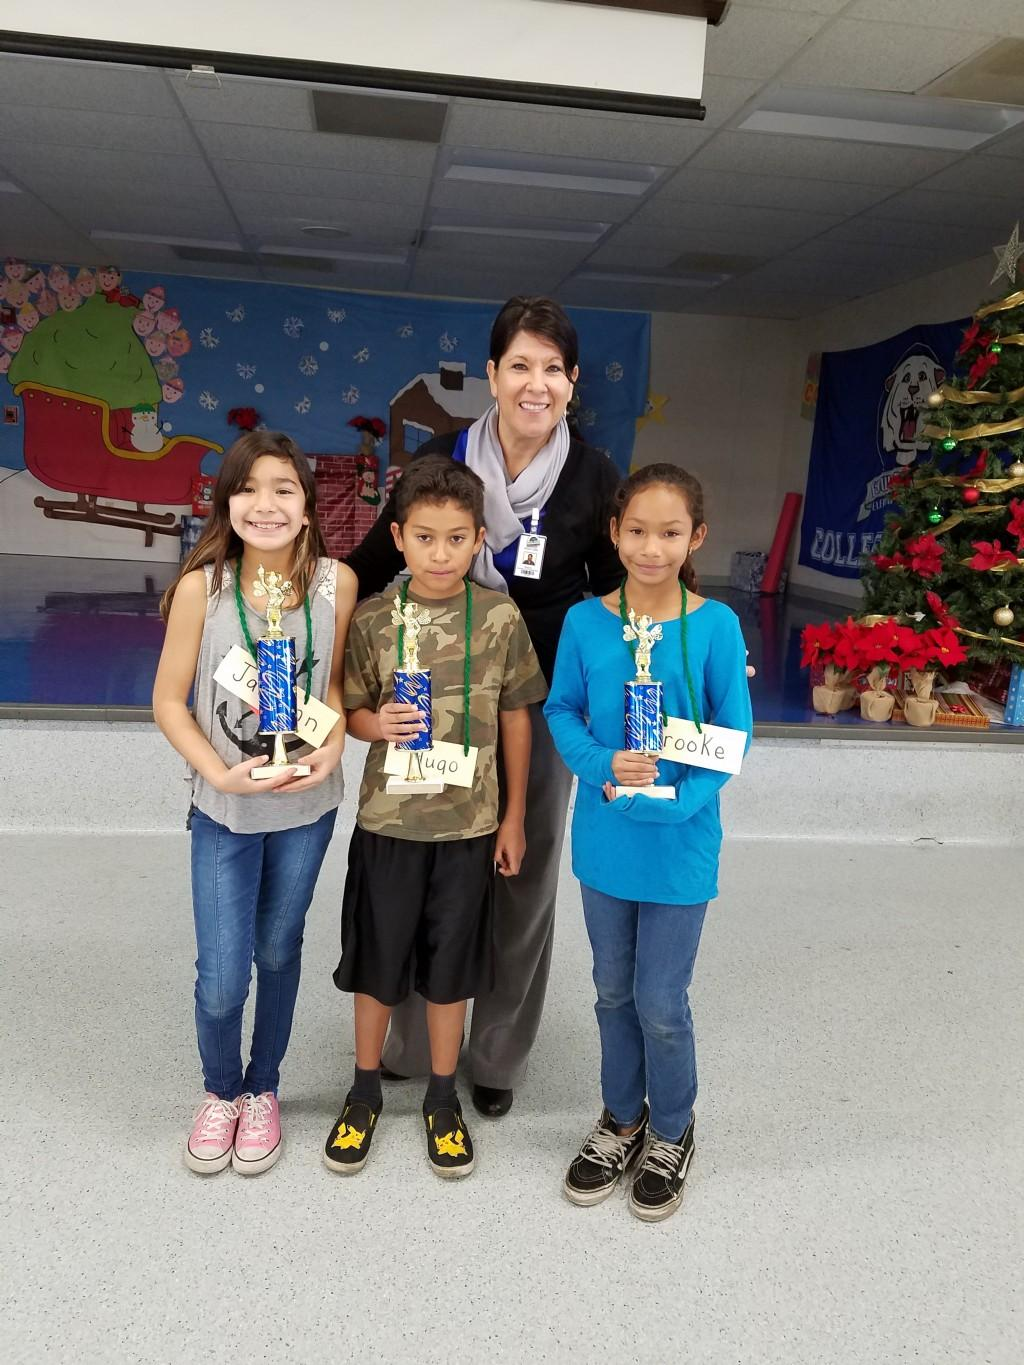 Students with their award, posing with Principal Inielda Luna